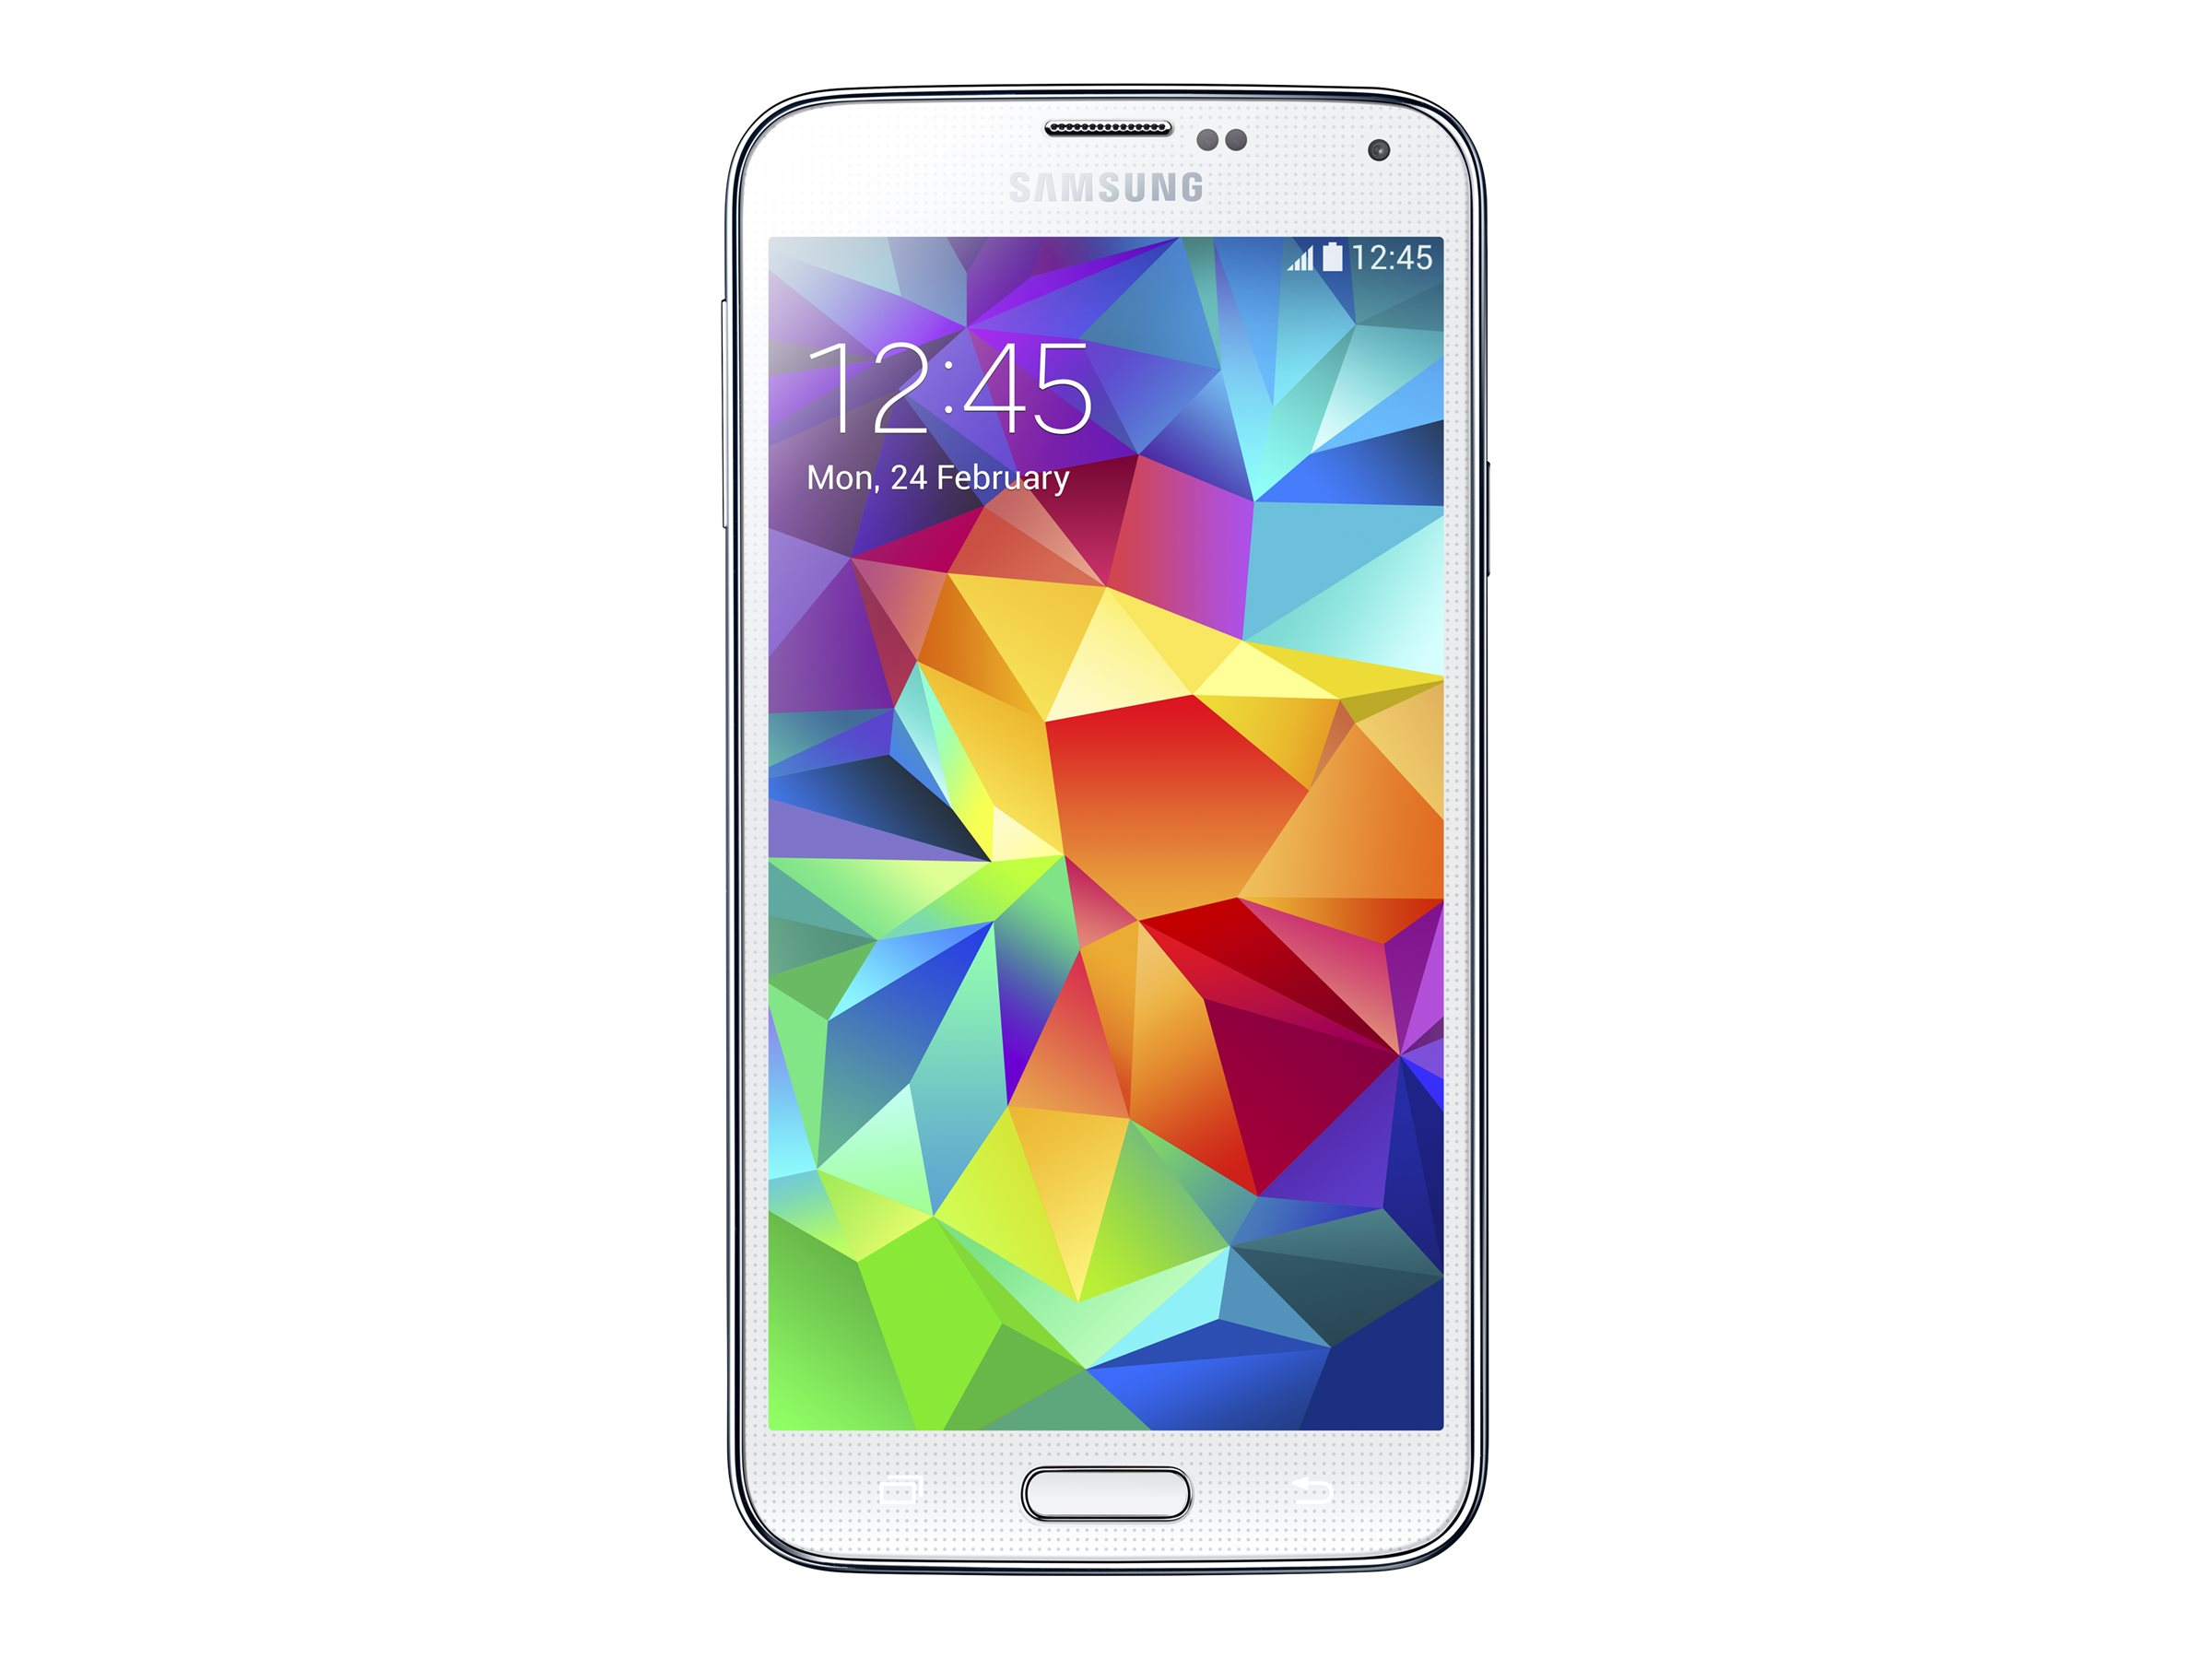 Samsung Galaxy S5 - blanc brillant - 4G LTE - 16 Go - GSM - smartphone Android